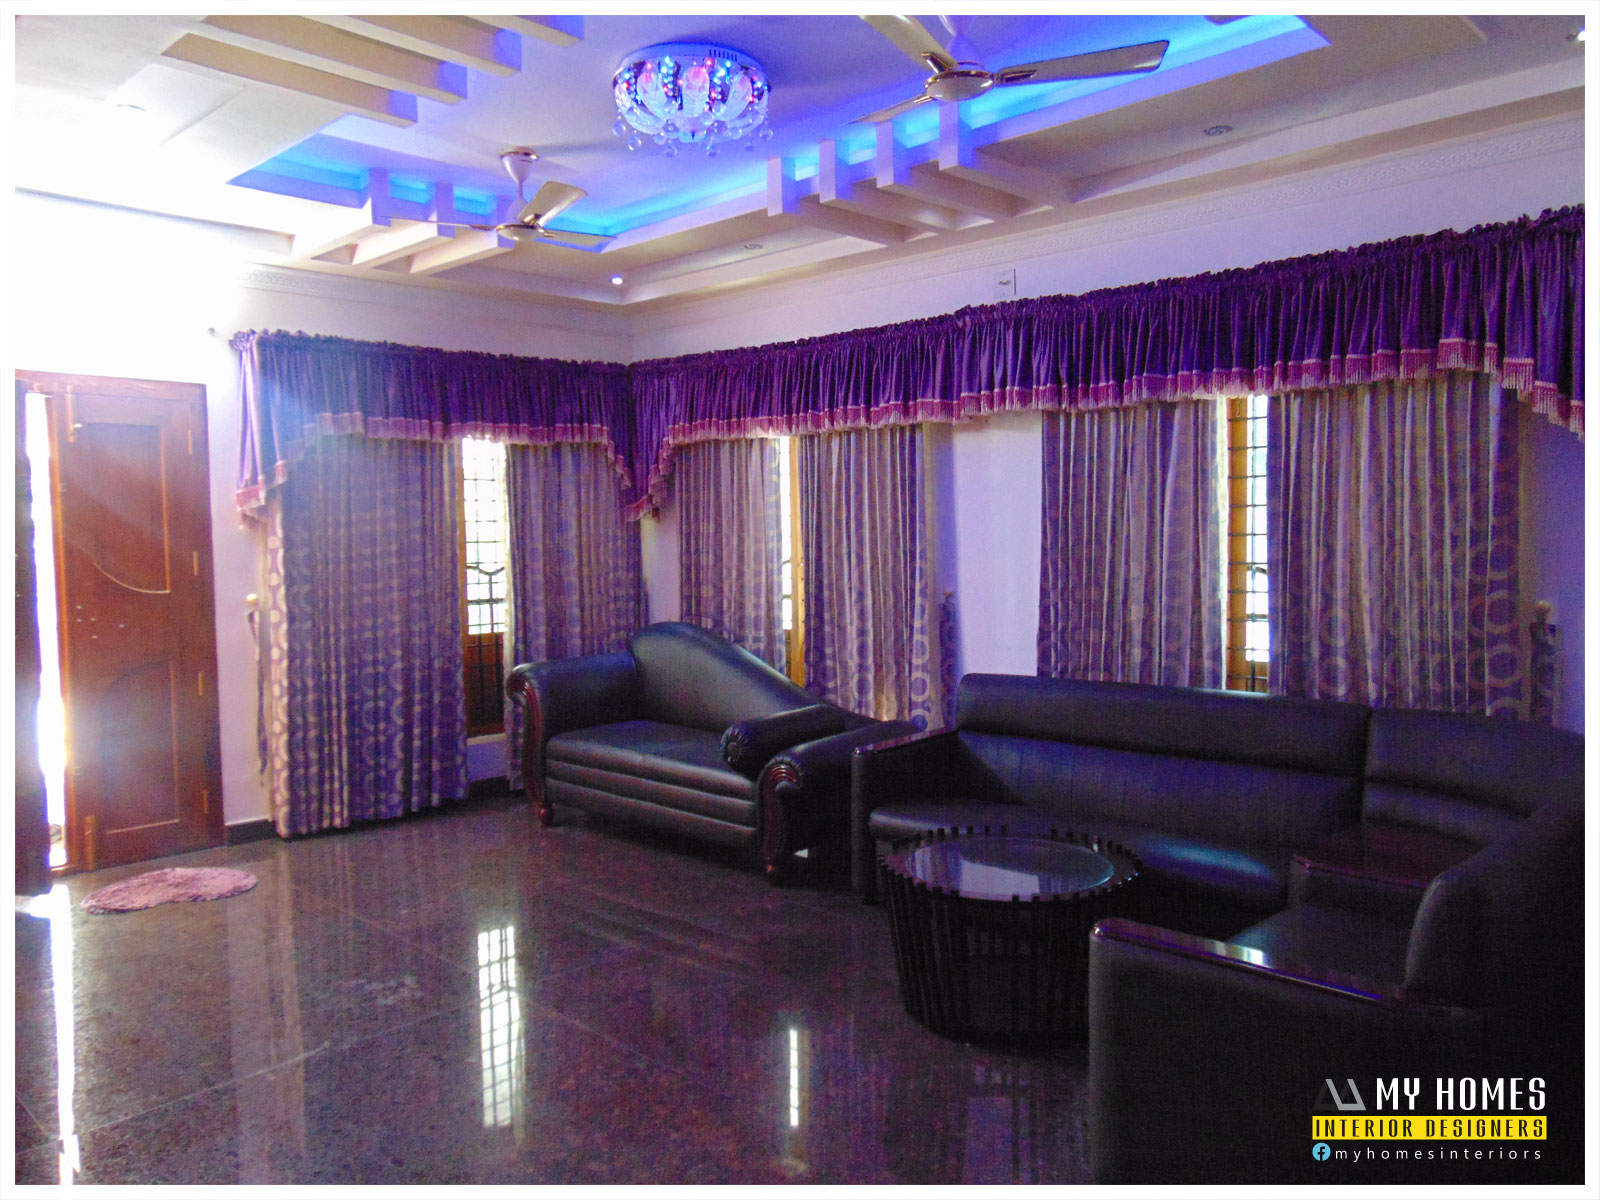 Kerala interior design ideas from designing company thrissur for Living room design ideas kerala